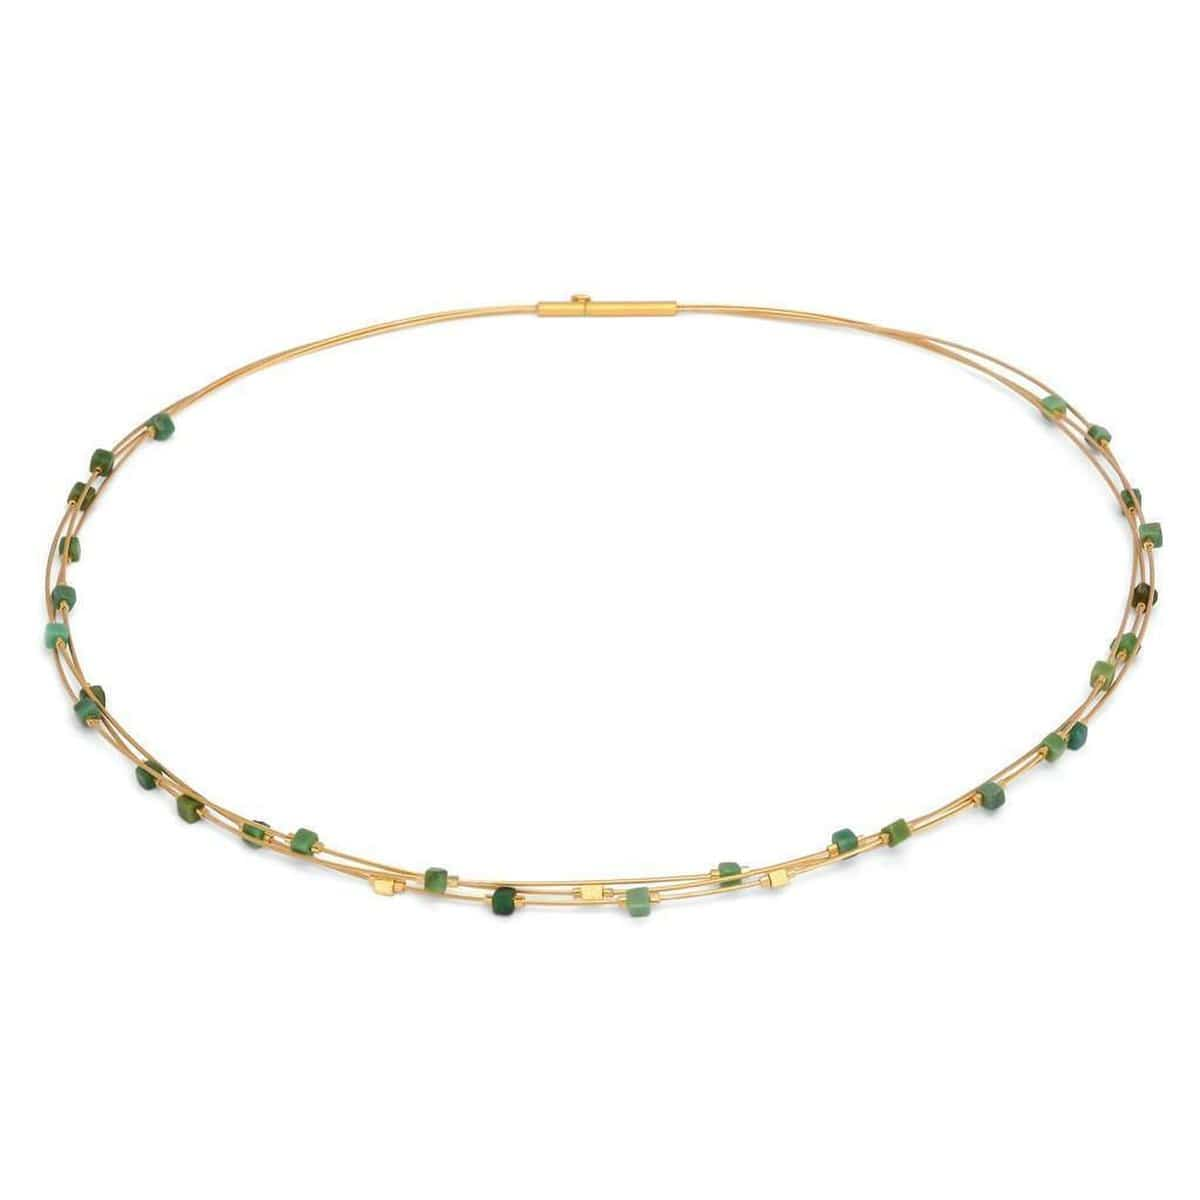 Cubelito Green Turquoise Necklace - 85344356